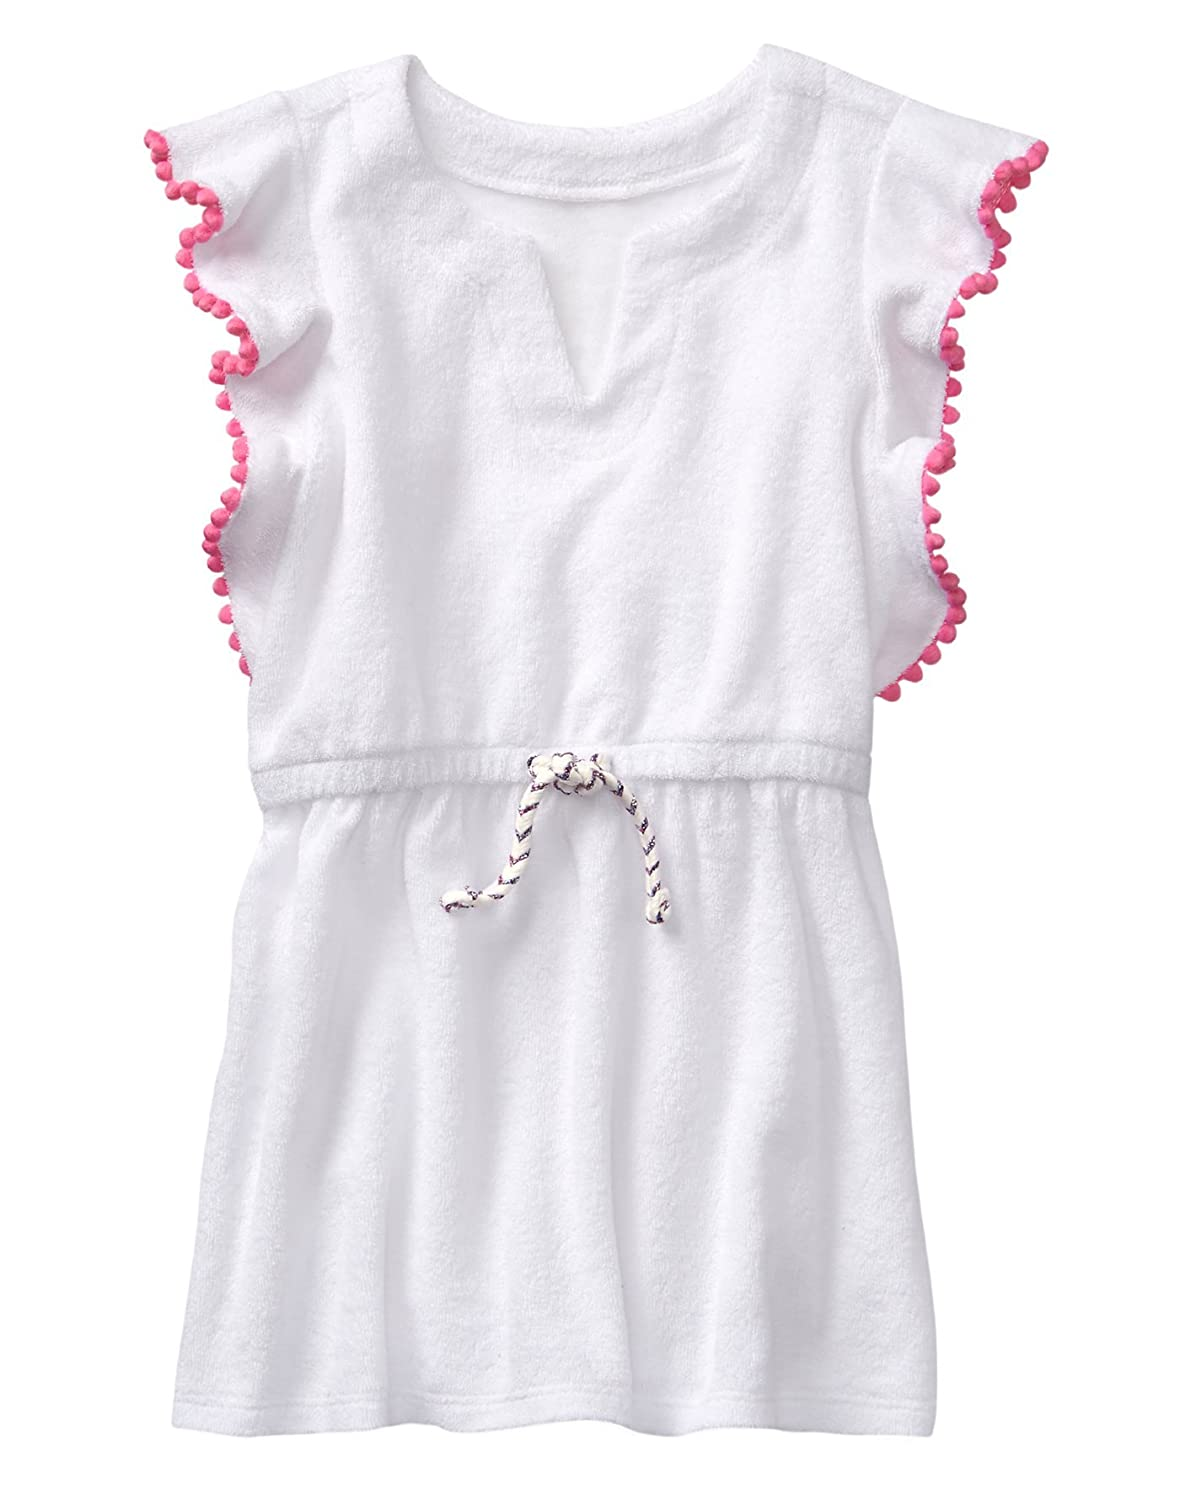 5f66c13e9b2b5 Top5: Gymboree Toddler Girls\' Swim Cover up with Bobble Trim